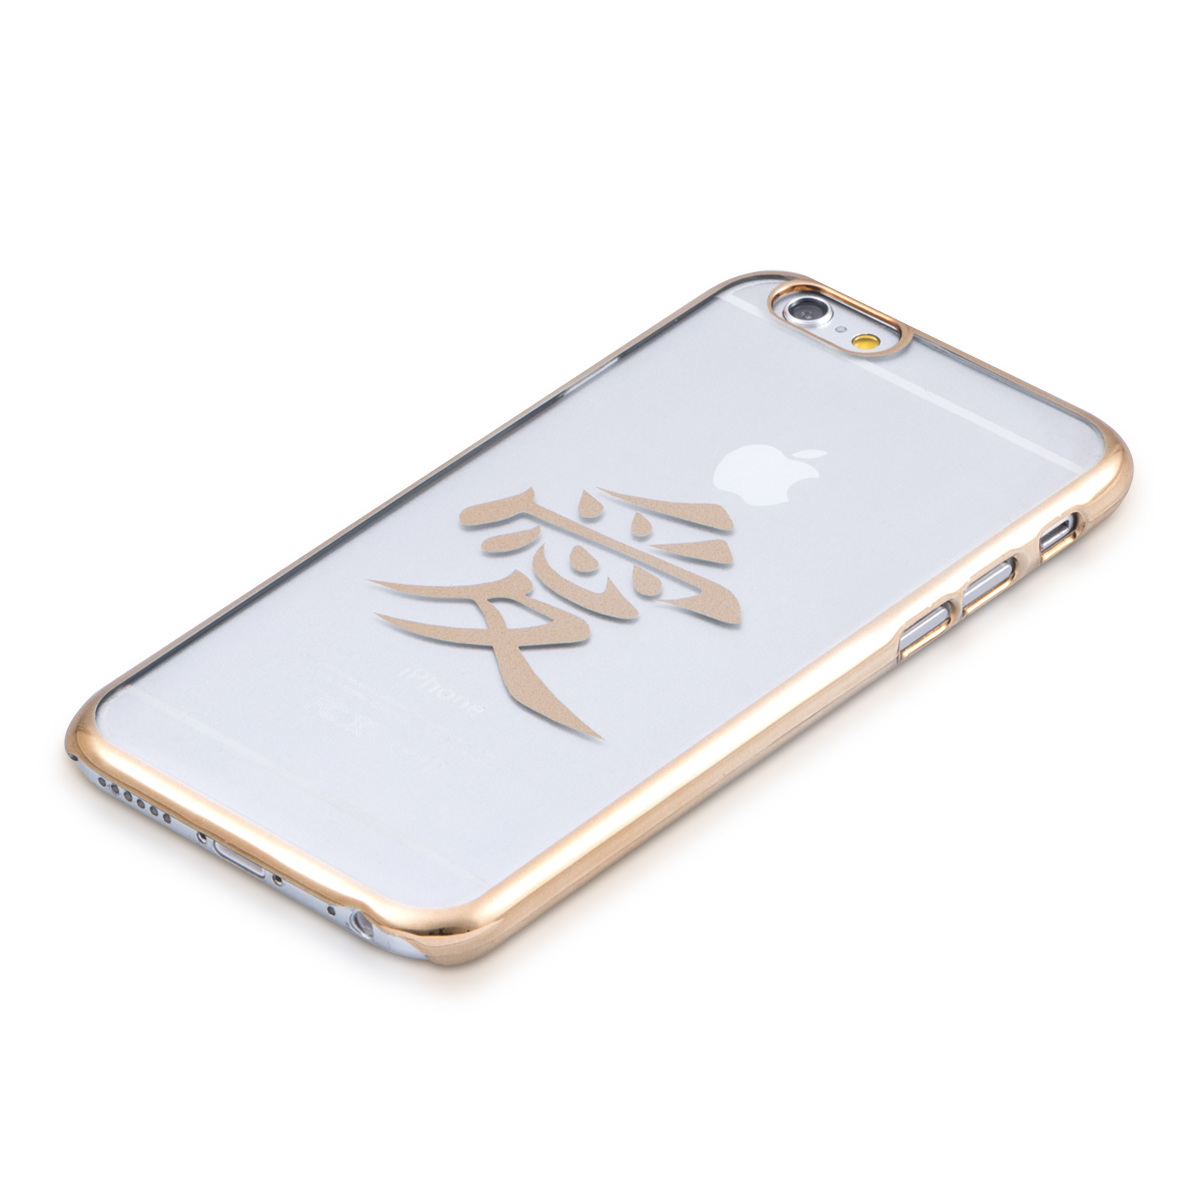 iphone 6 case apple kwmobile for apple iphone 6 6s clear cover 14953